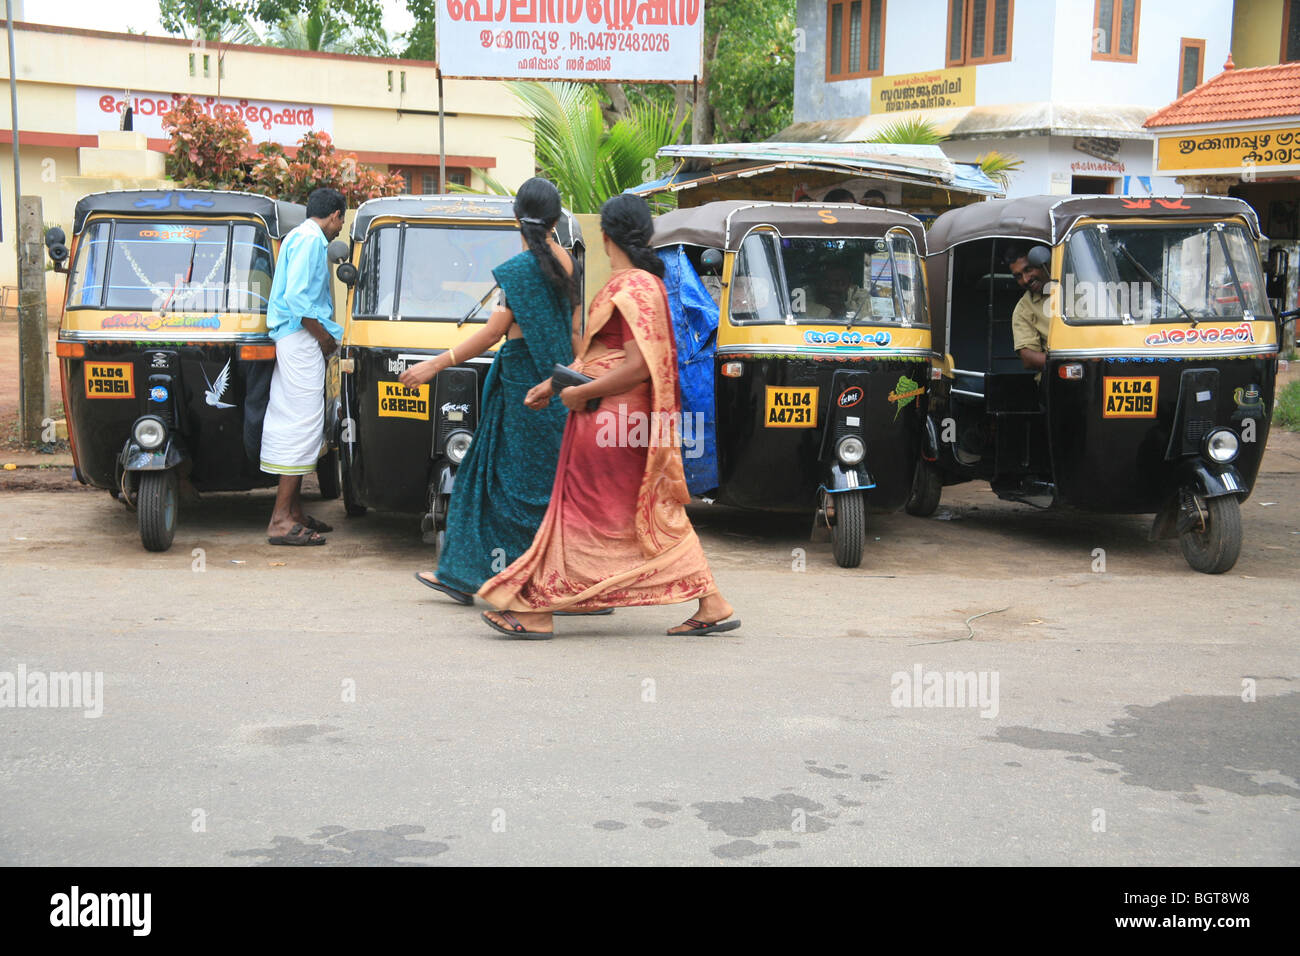 People walking past parked Tut Tuts, Kerala, India - Stock Image